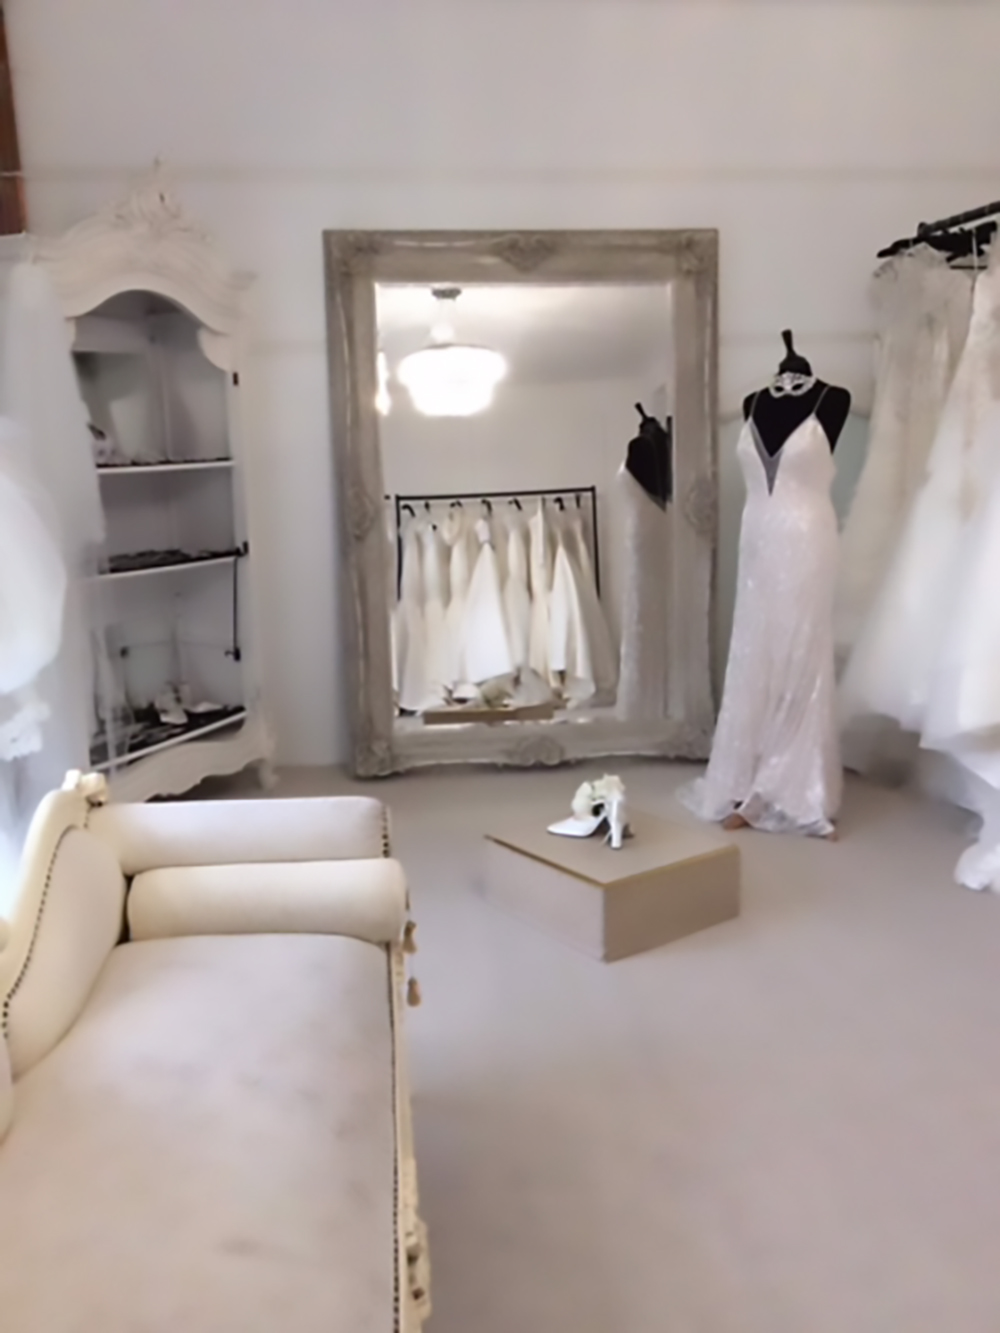 Angelstar Bridal | Lisburn Road, Belfast, Northern Ireland | Bridal Suite